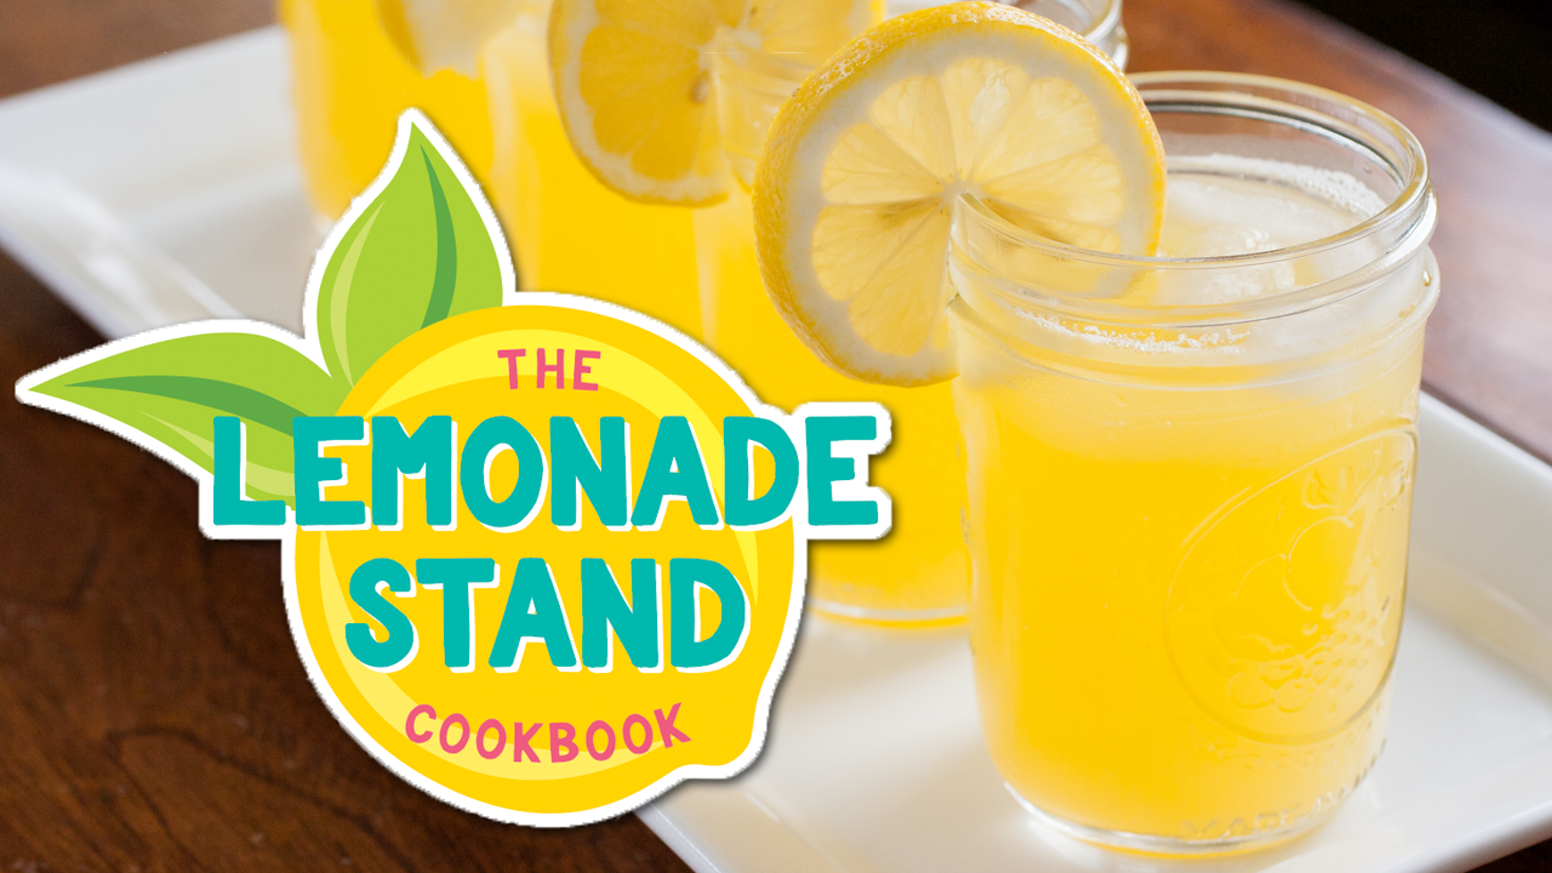 With easy-to-follow, kid-tested recipes and crafts, The Lemonade